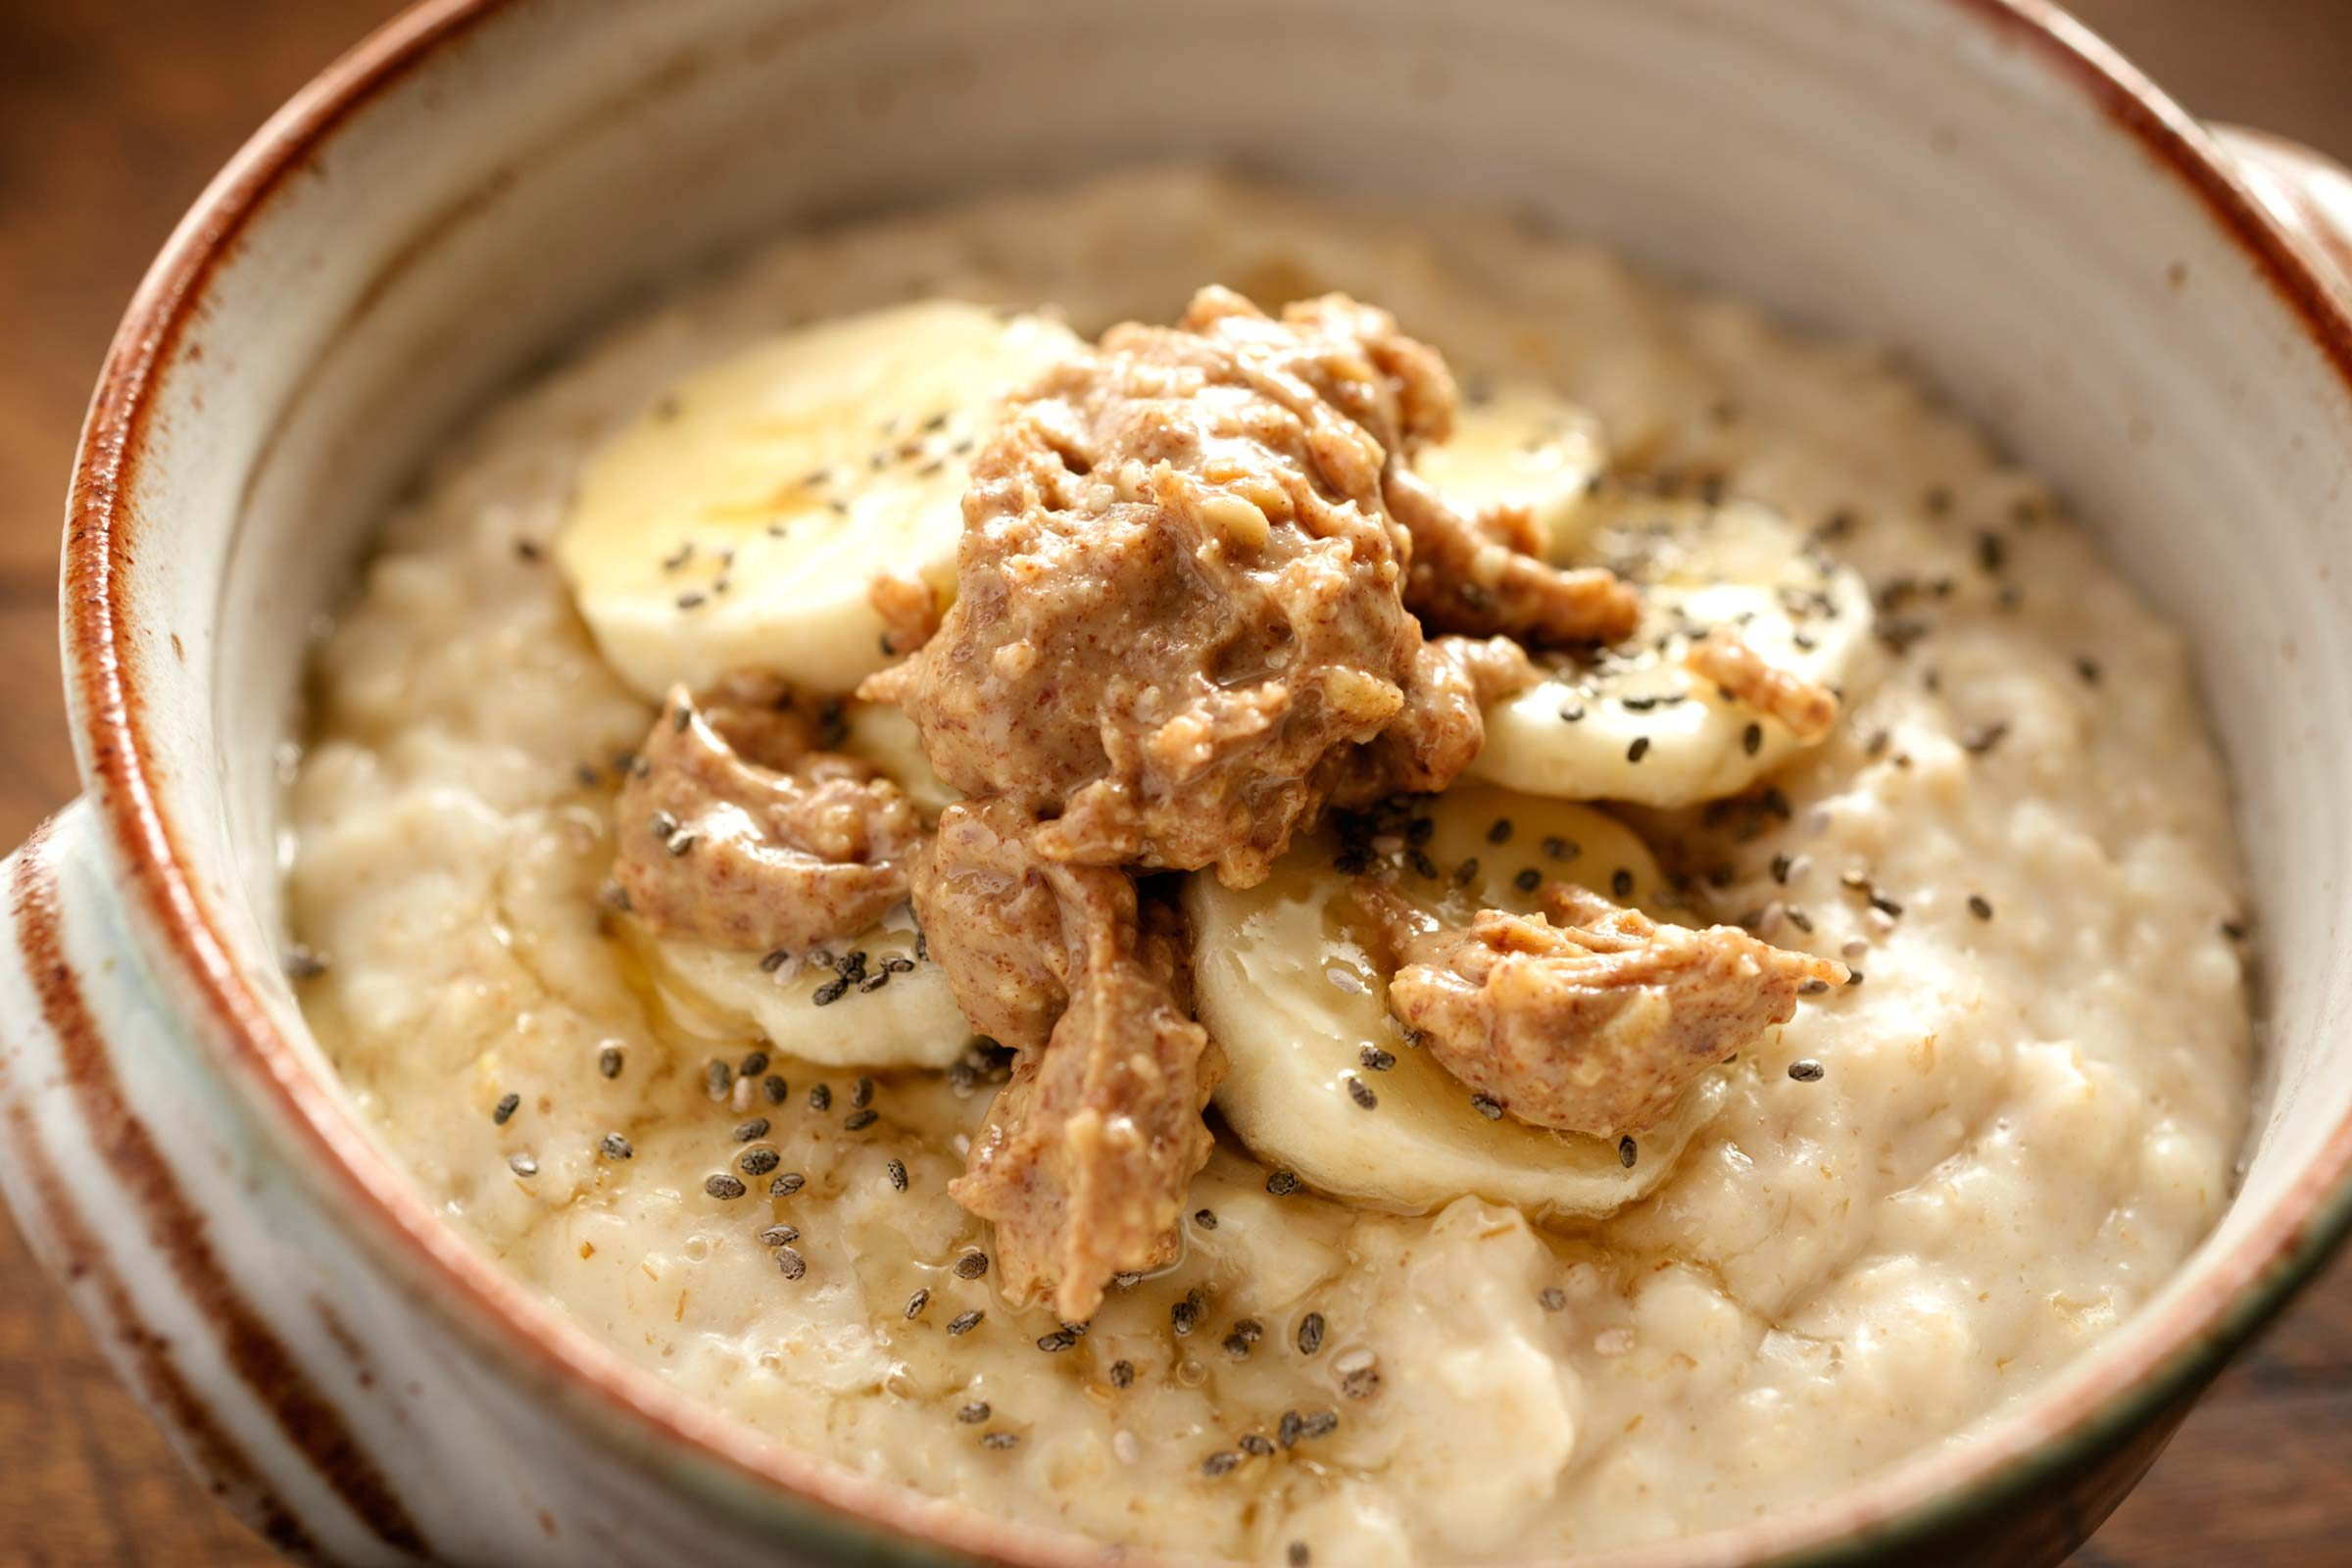 refuel after exercise | oatmeal with bananas